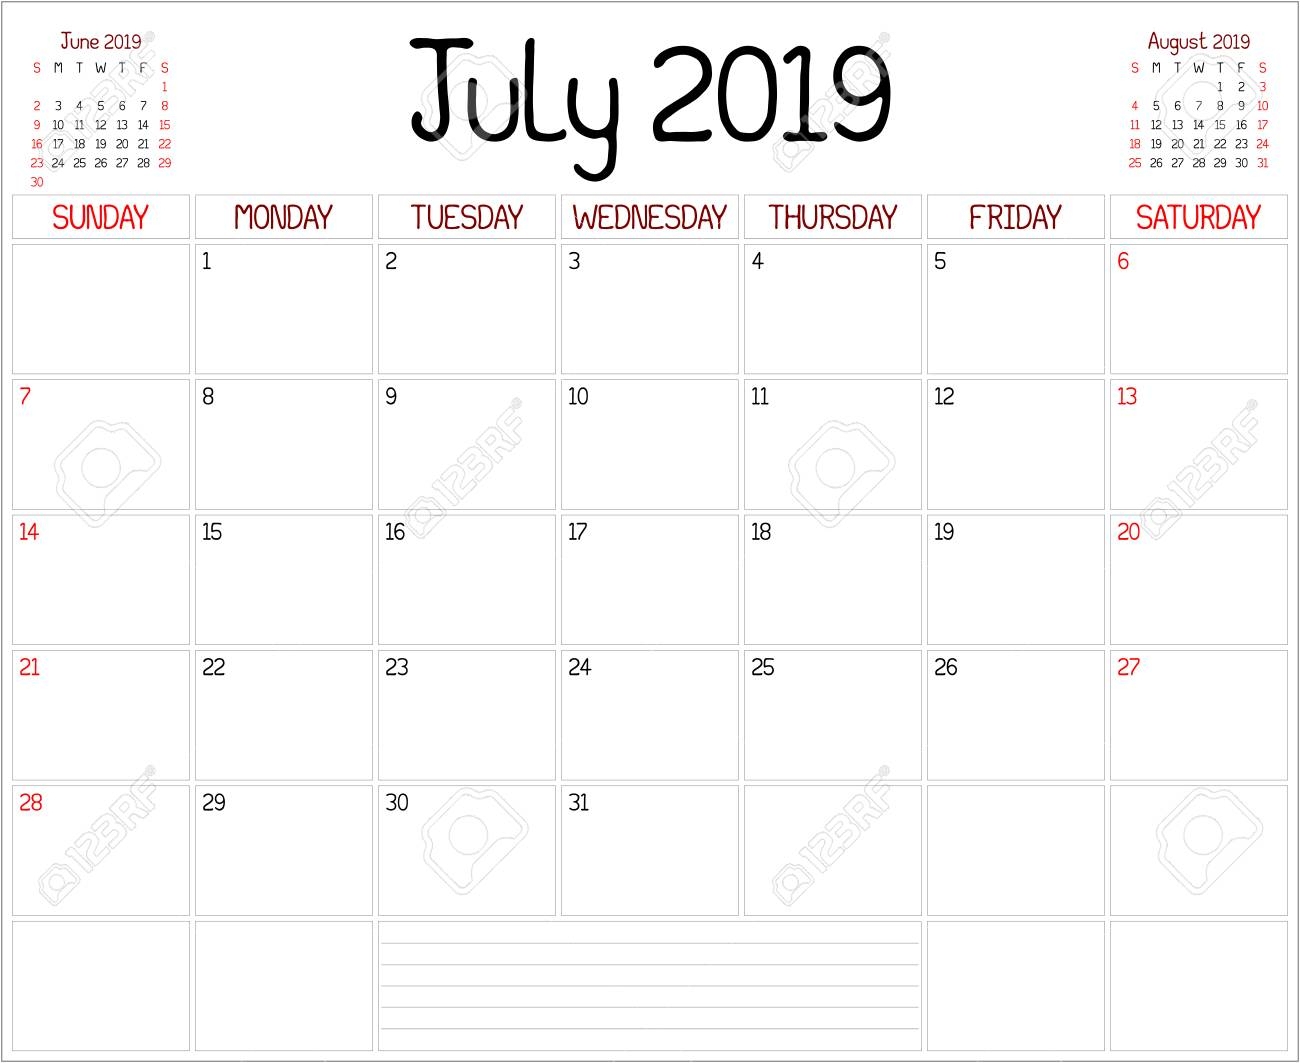 Year 2019 July Planner - A Monthly Planner Calendar For July..